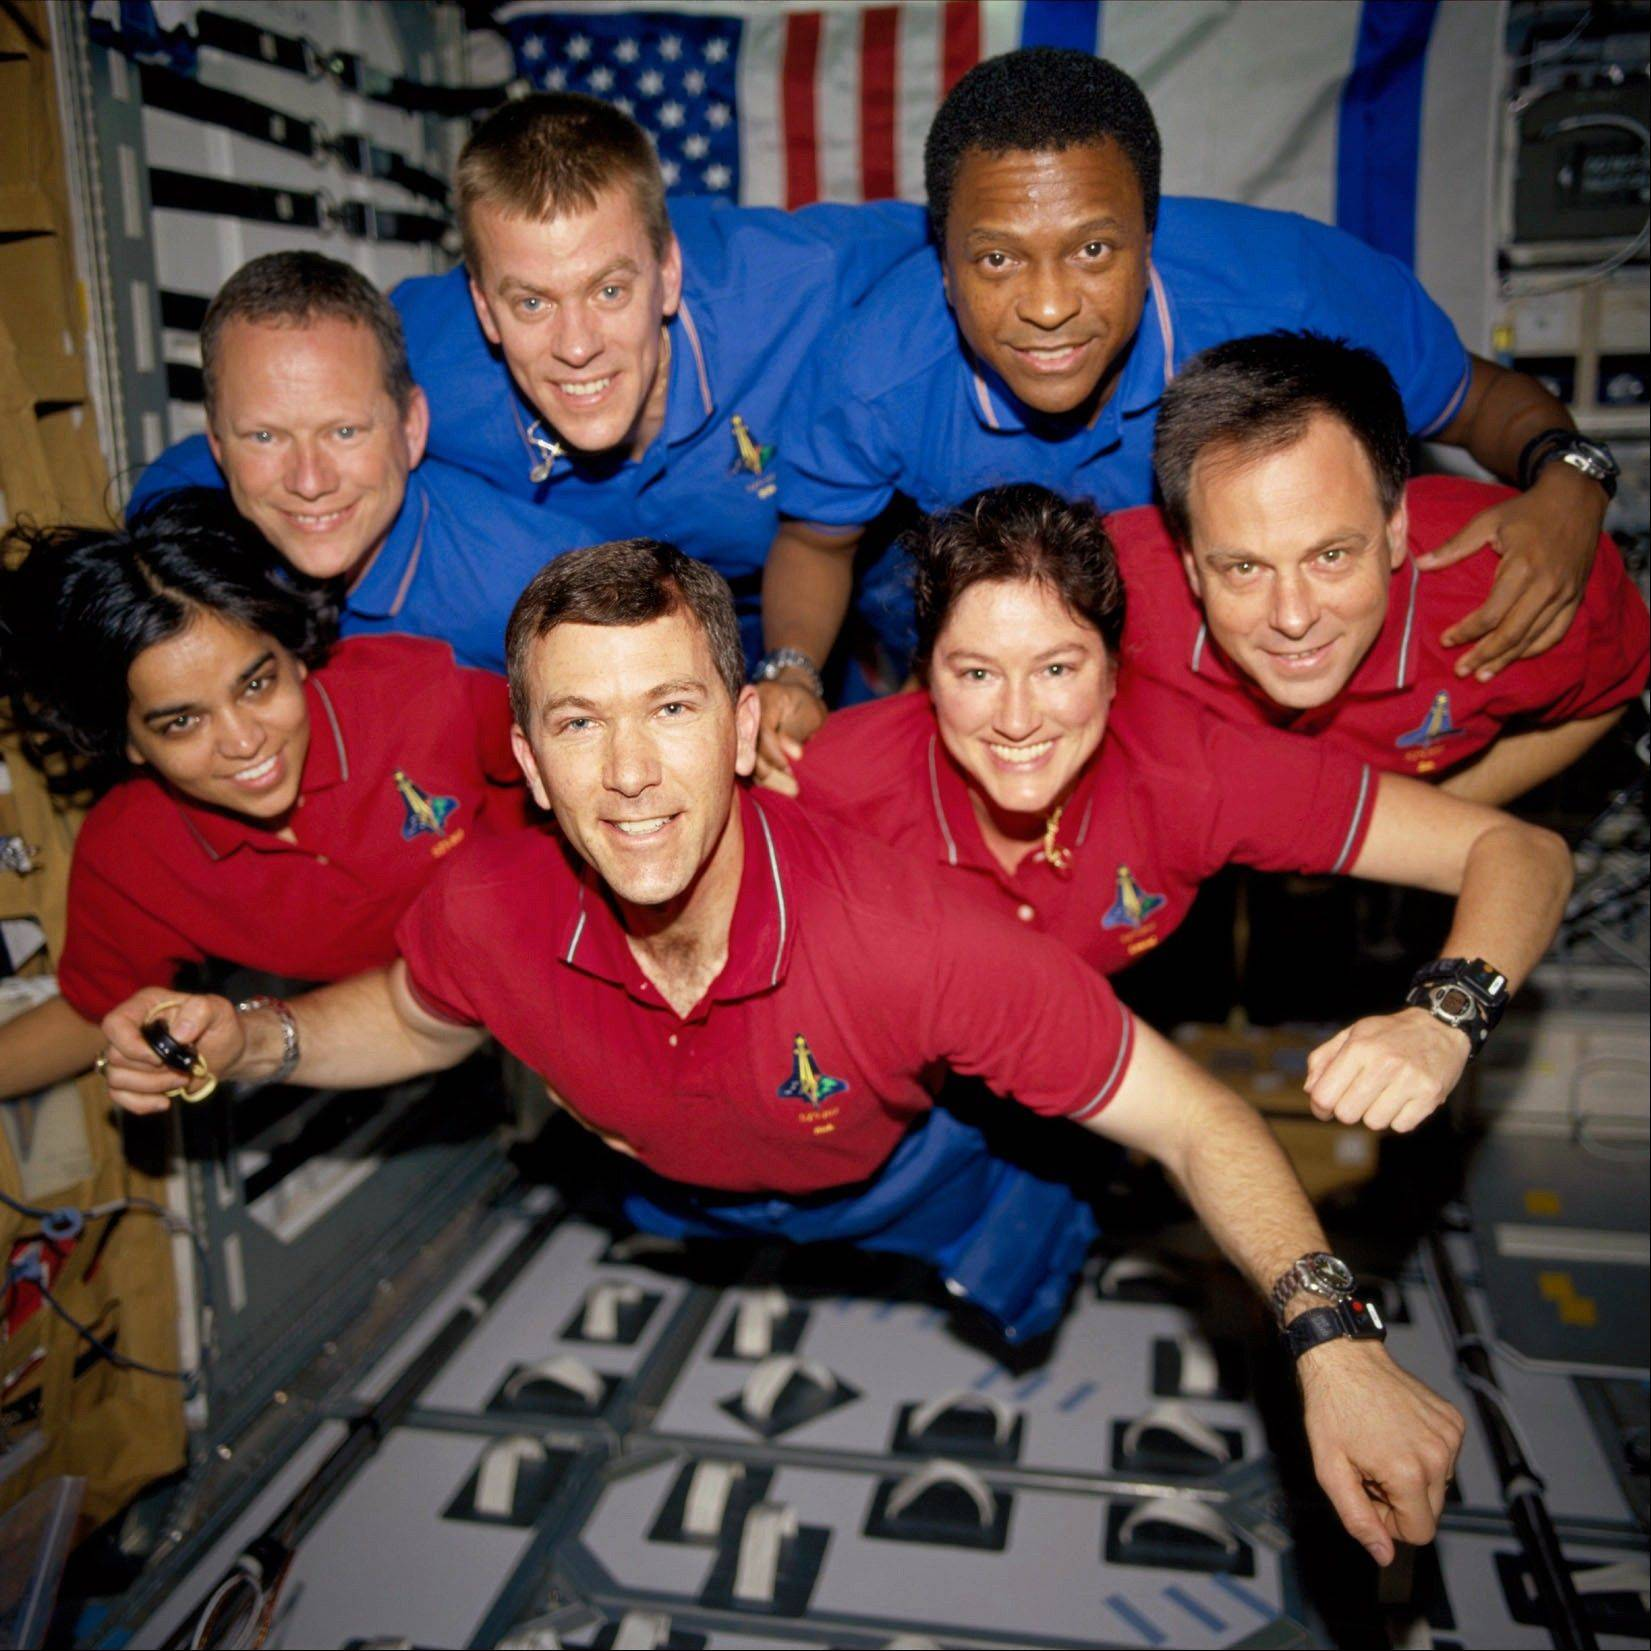 This photo provided by NASA in June 2003 shows STS-107 crew members in the SPACEHAB Research Double Module (RDM) aboard the Space Shuttle Columbia. On Feb. 1, 2003, the seven crew members were lost as the Columbia fell apart over East Texas. This picture was on a roll of unprocessed film later recovered by searchers from the debris. From the left (bottom row), wearing red shirts to signify their shiftís color, are astronauts Kalpana Chawla, mission specialist; Rick D. Husband, mission commander; Laurel B. Clark, mission specialist; and Ilan Ramon, payload specialist. From the left (top row), wearing blue shirts, are astronauts David M. Brown, mission specialist; William C. McCool, pilot; and Michael P. Anderson, payload commander. Ramon represents the Israeli Space Agency.